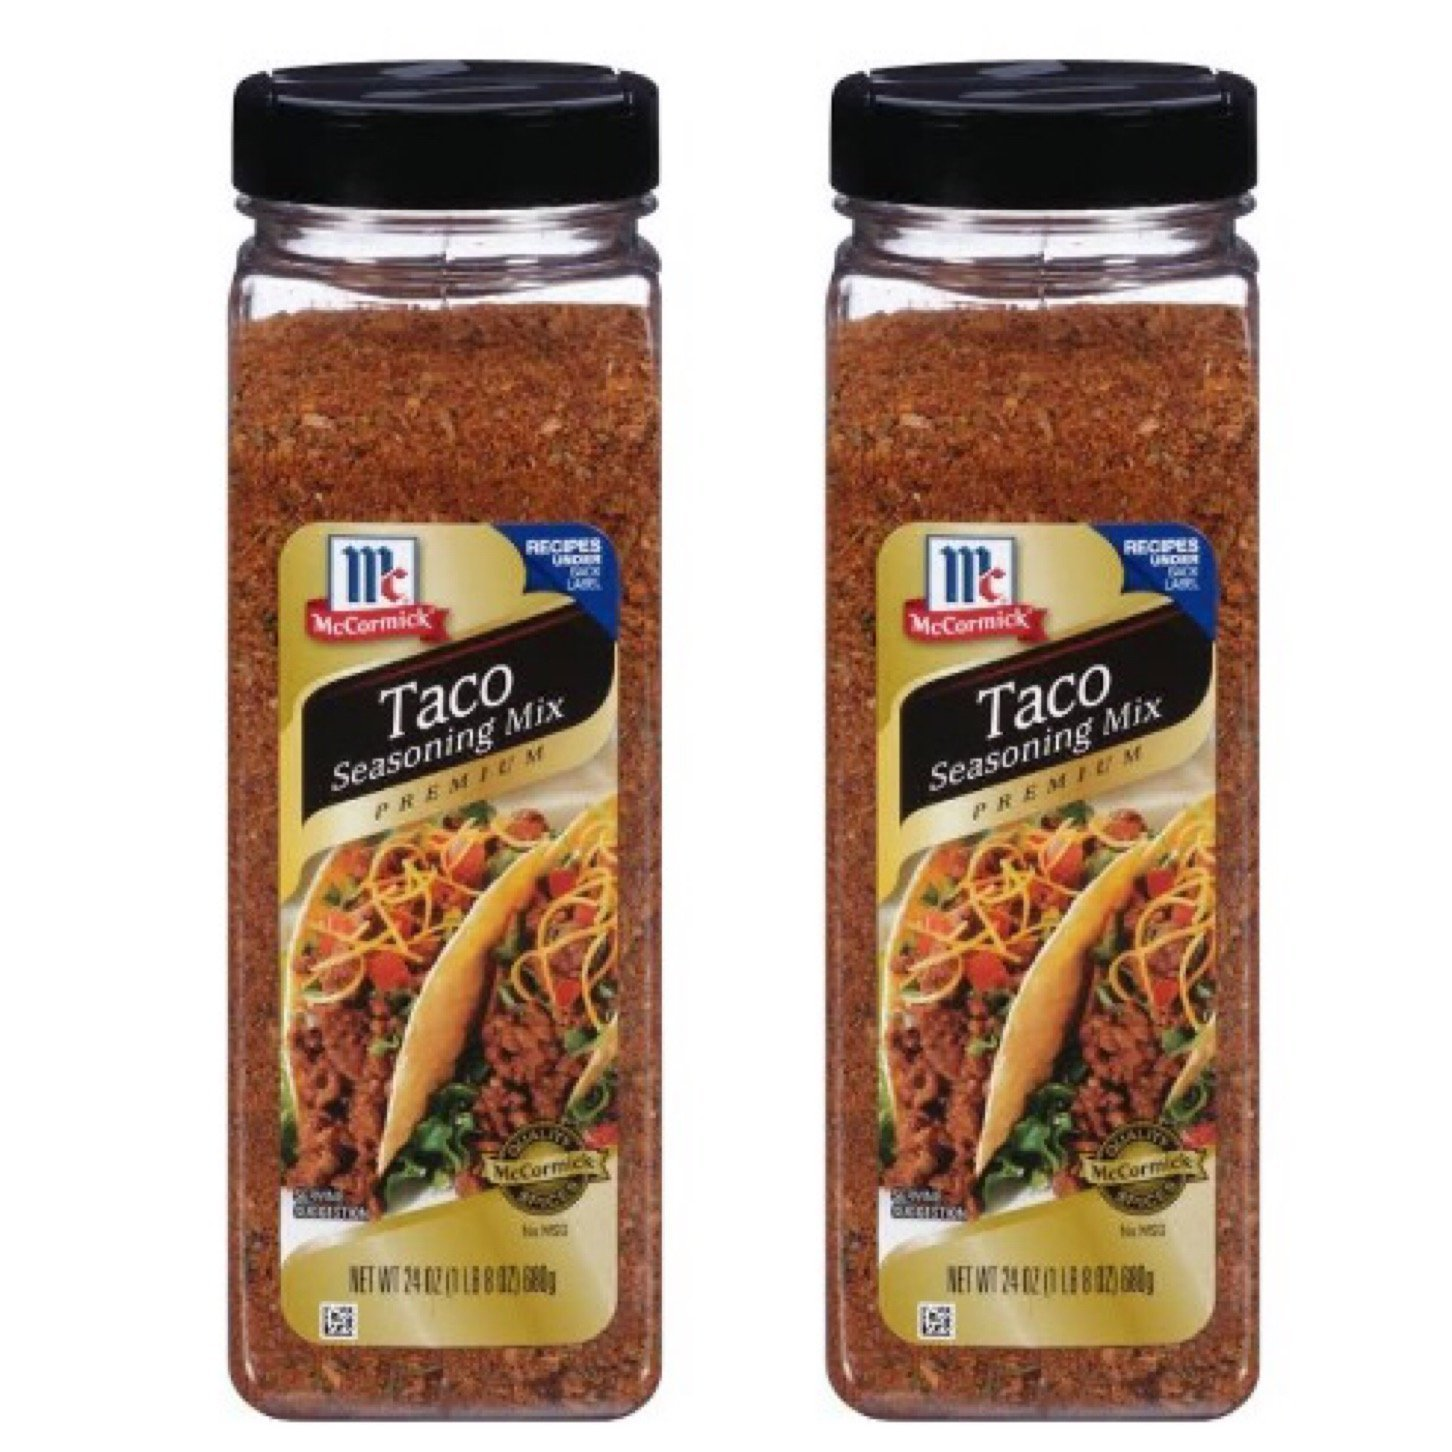 McCormick Premium Taco Seasoning Mix 24 oz (pack of 2)